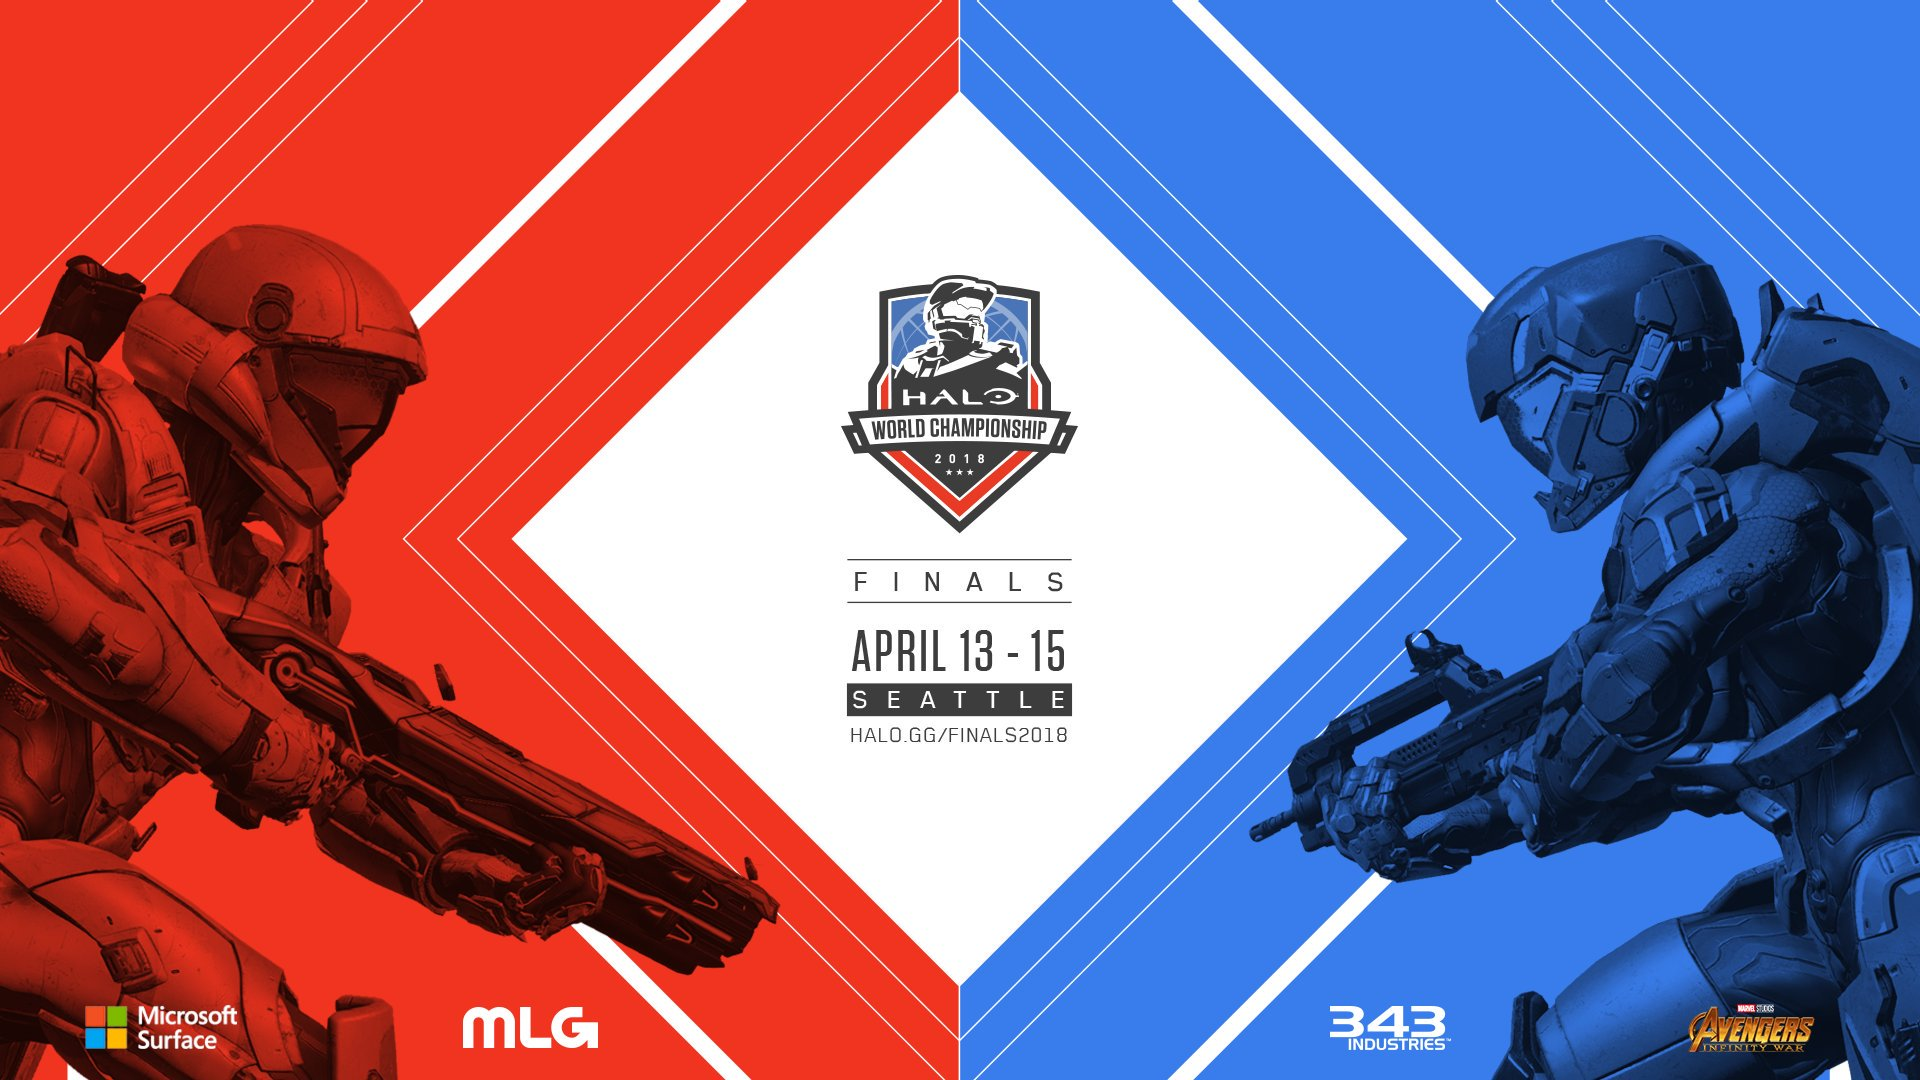 Halo World Championships 2018 Seattle Finals